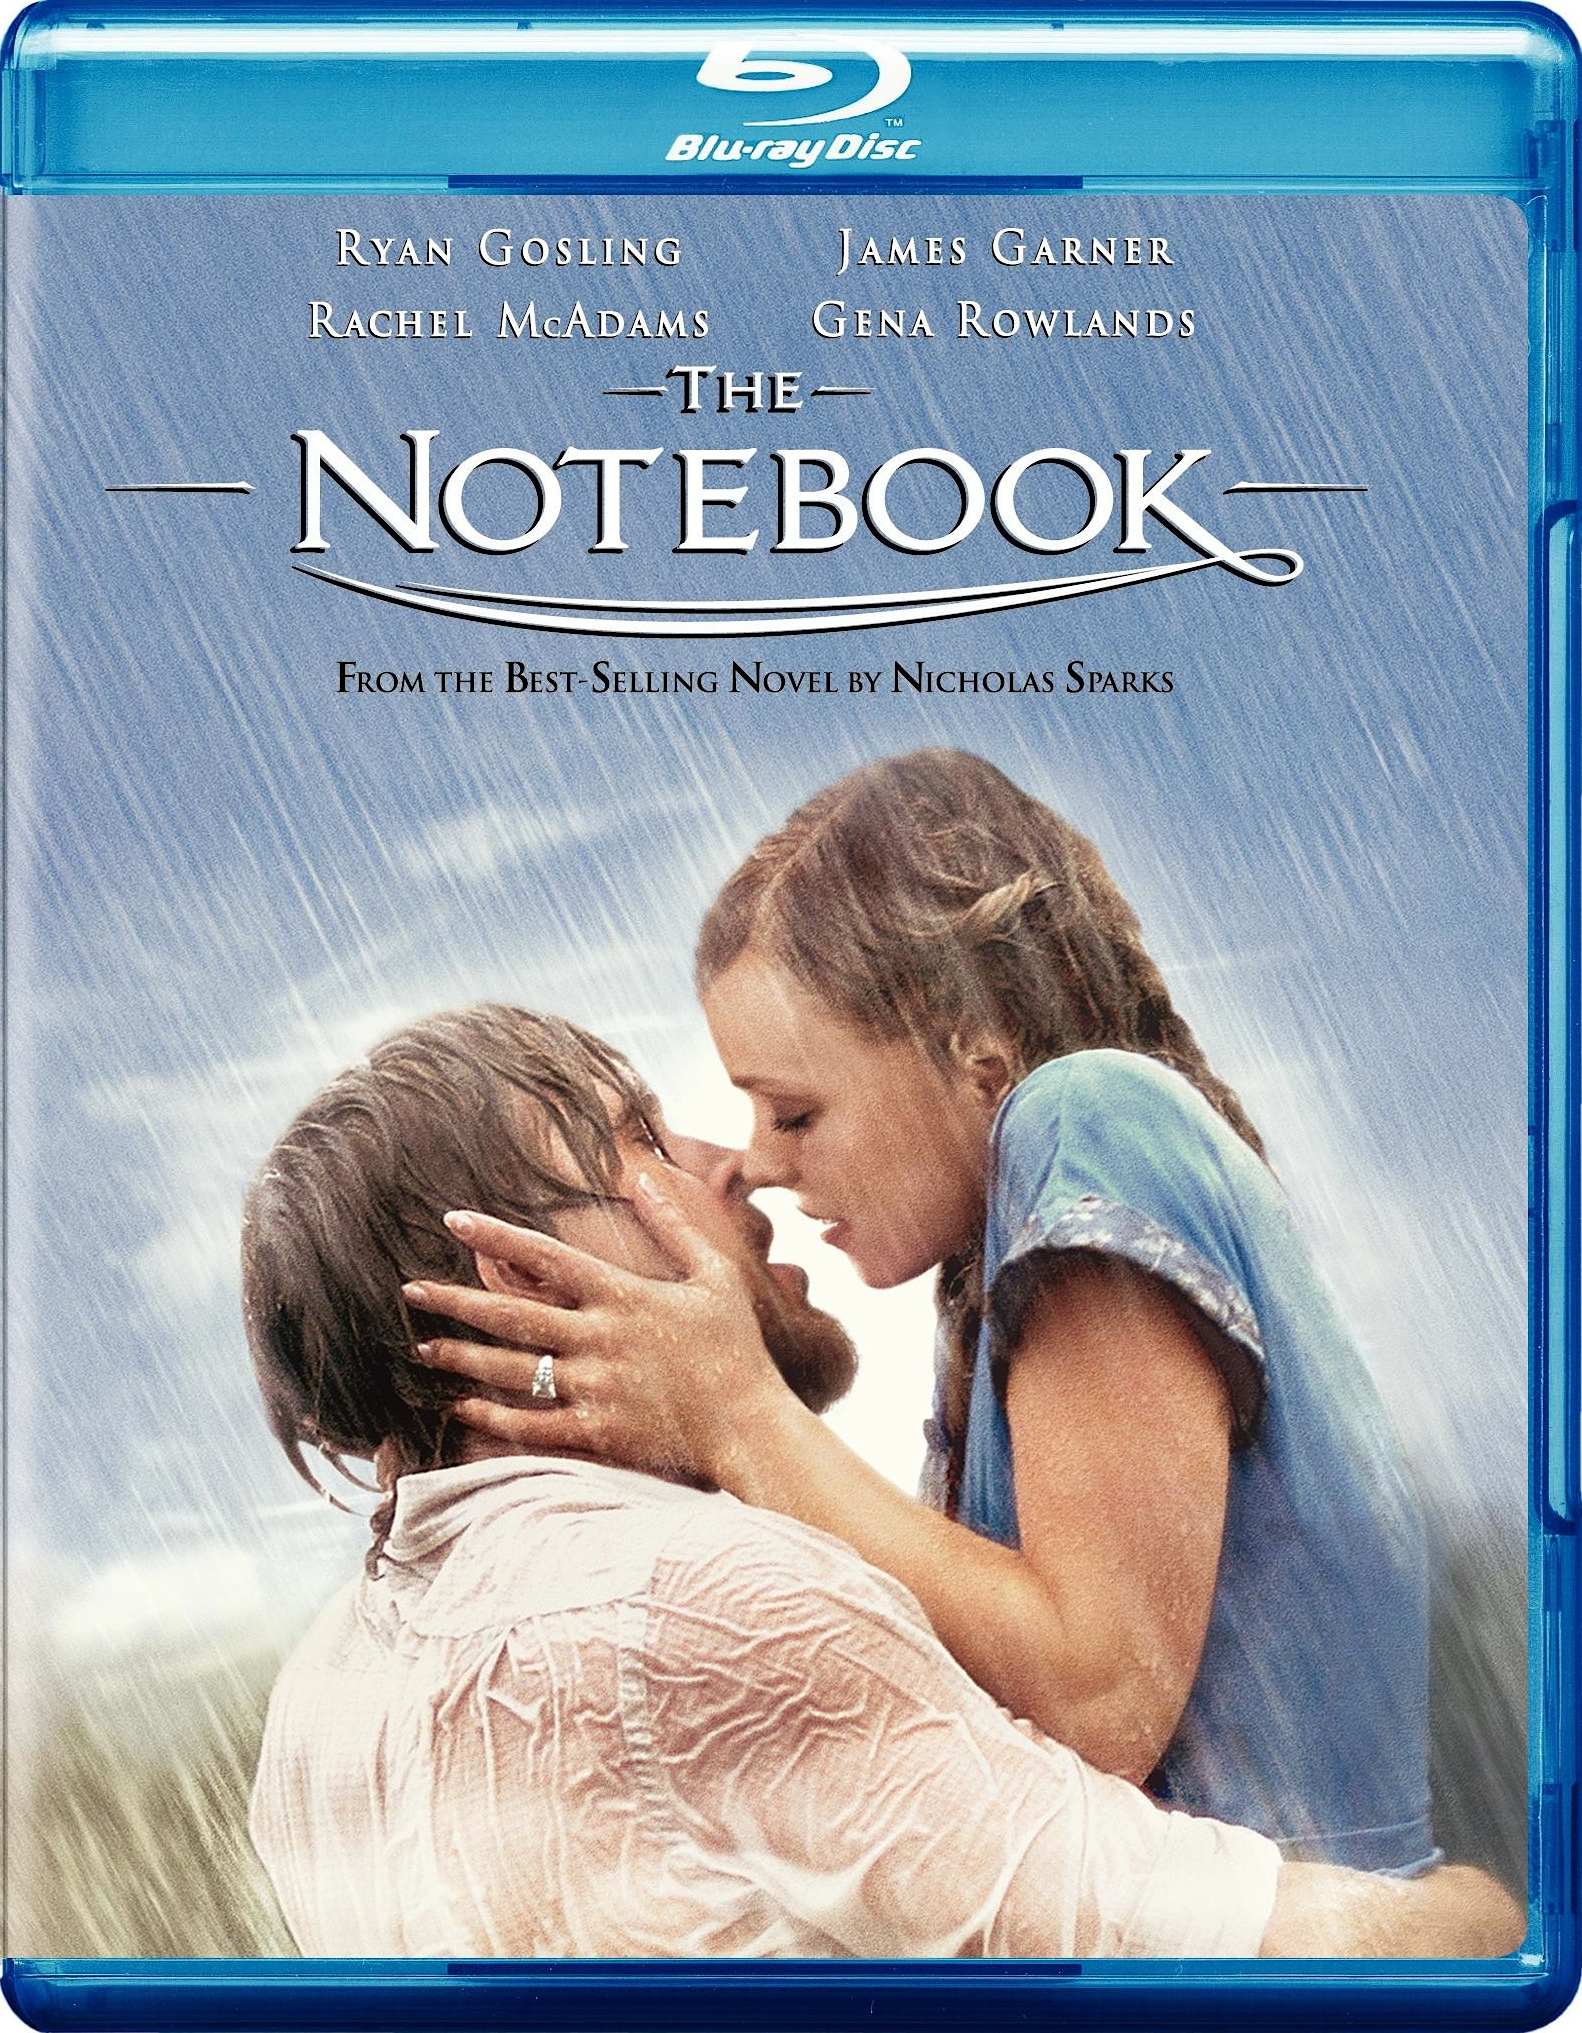 The Notebook (2004) poster image